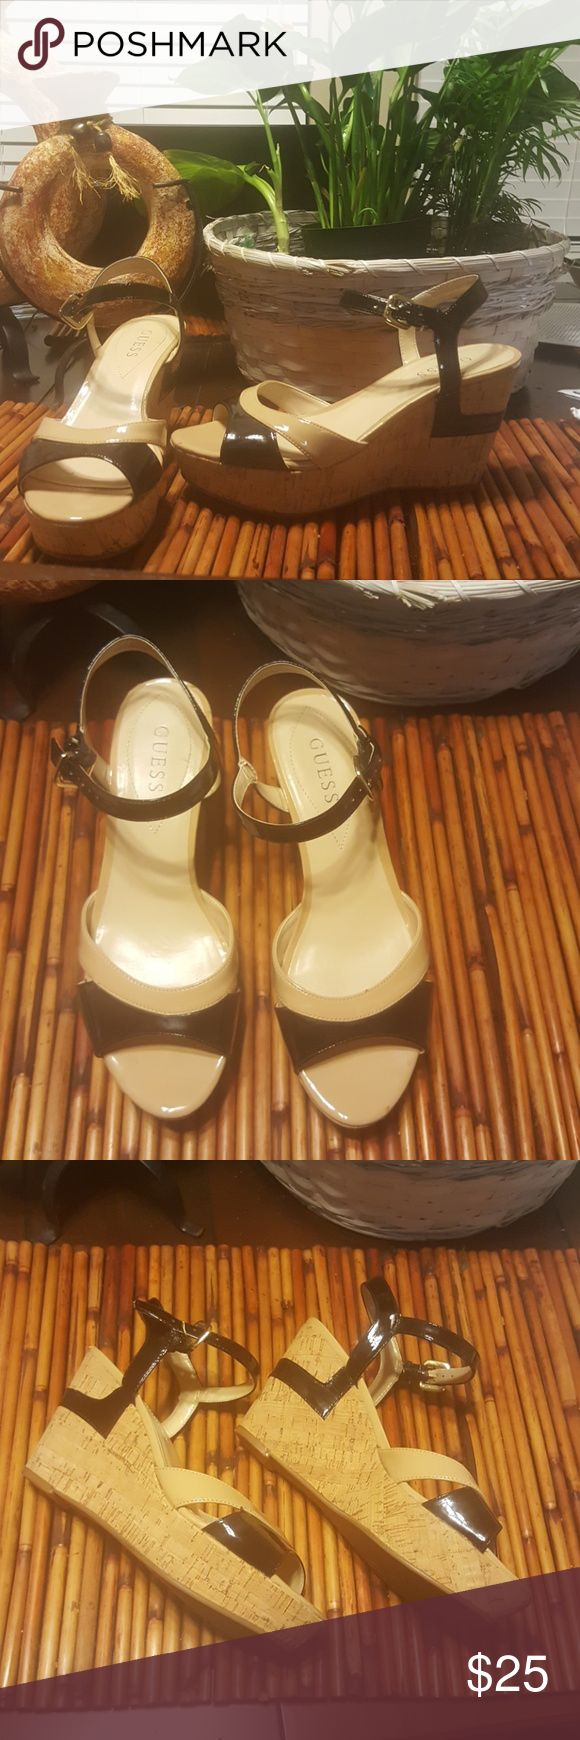 Today's Sale: Guess Cream and Black cork wedges Cork wedge sandals. 1 inch platform at toes and 3.5 inch platform at heels. Gently worn on few occasions. Guess Shoes Wedges